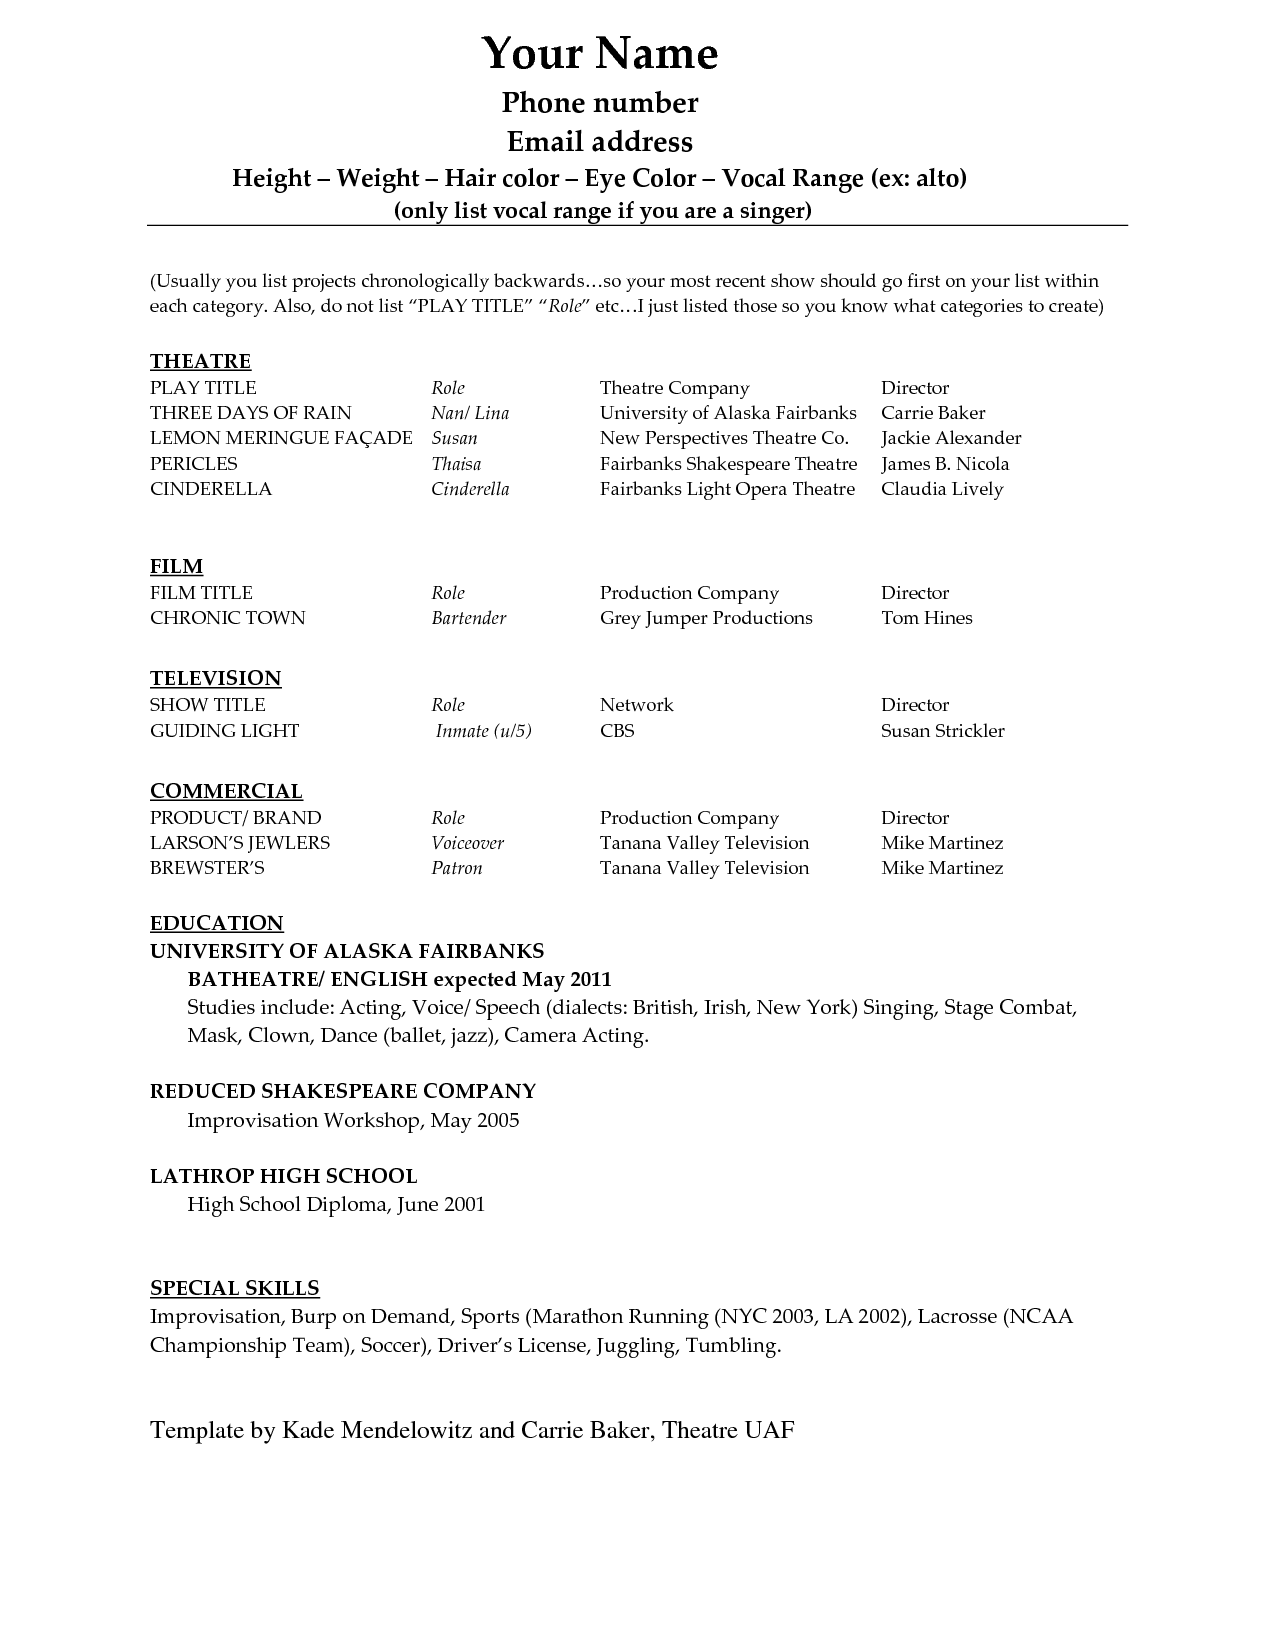 Resume Template For Microsoft Word 2010 Resume Template Microsoft Word 2010 Resume Template Microsoft Word